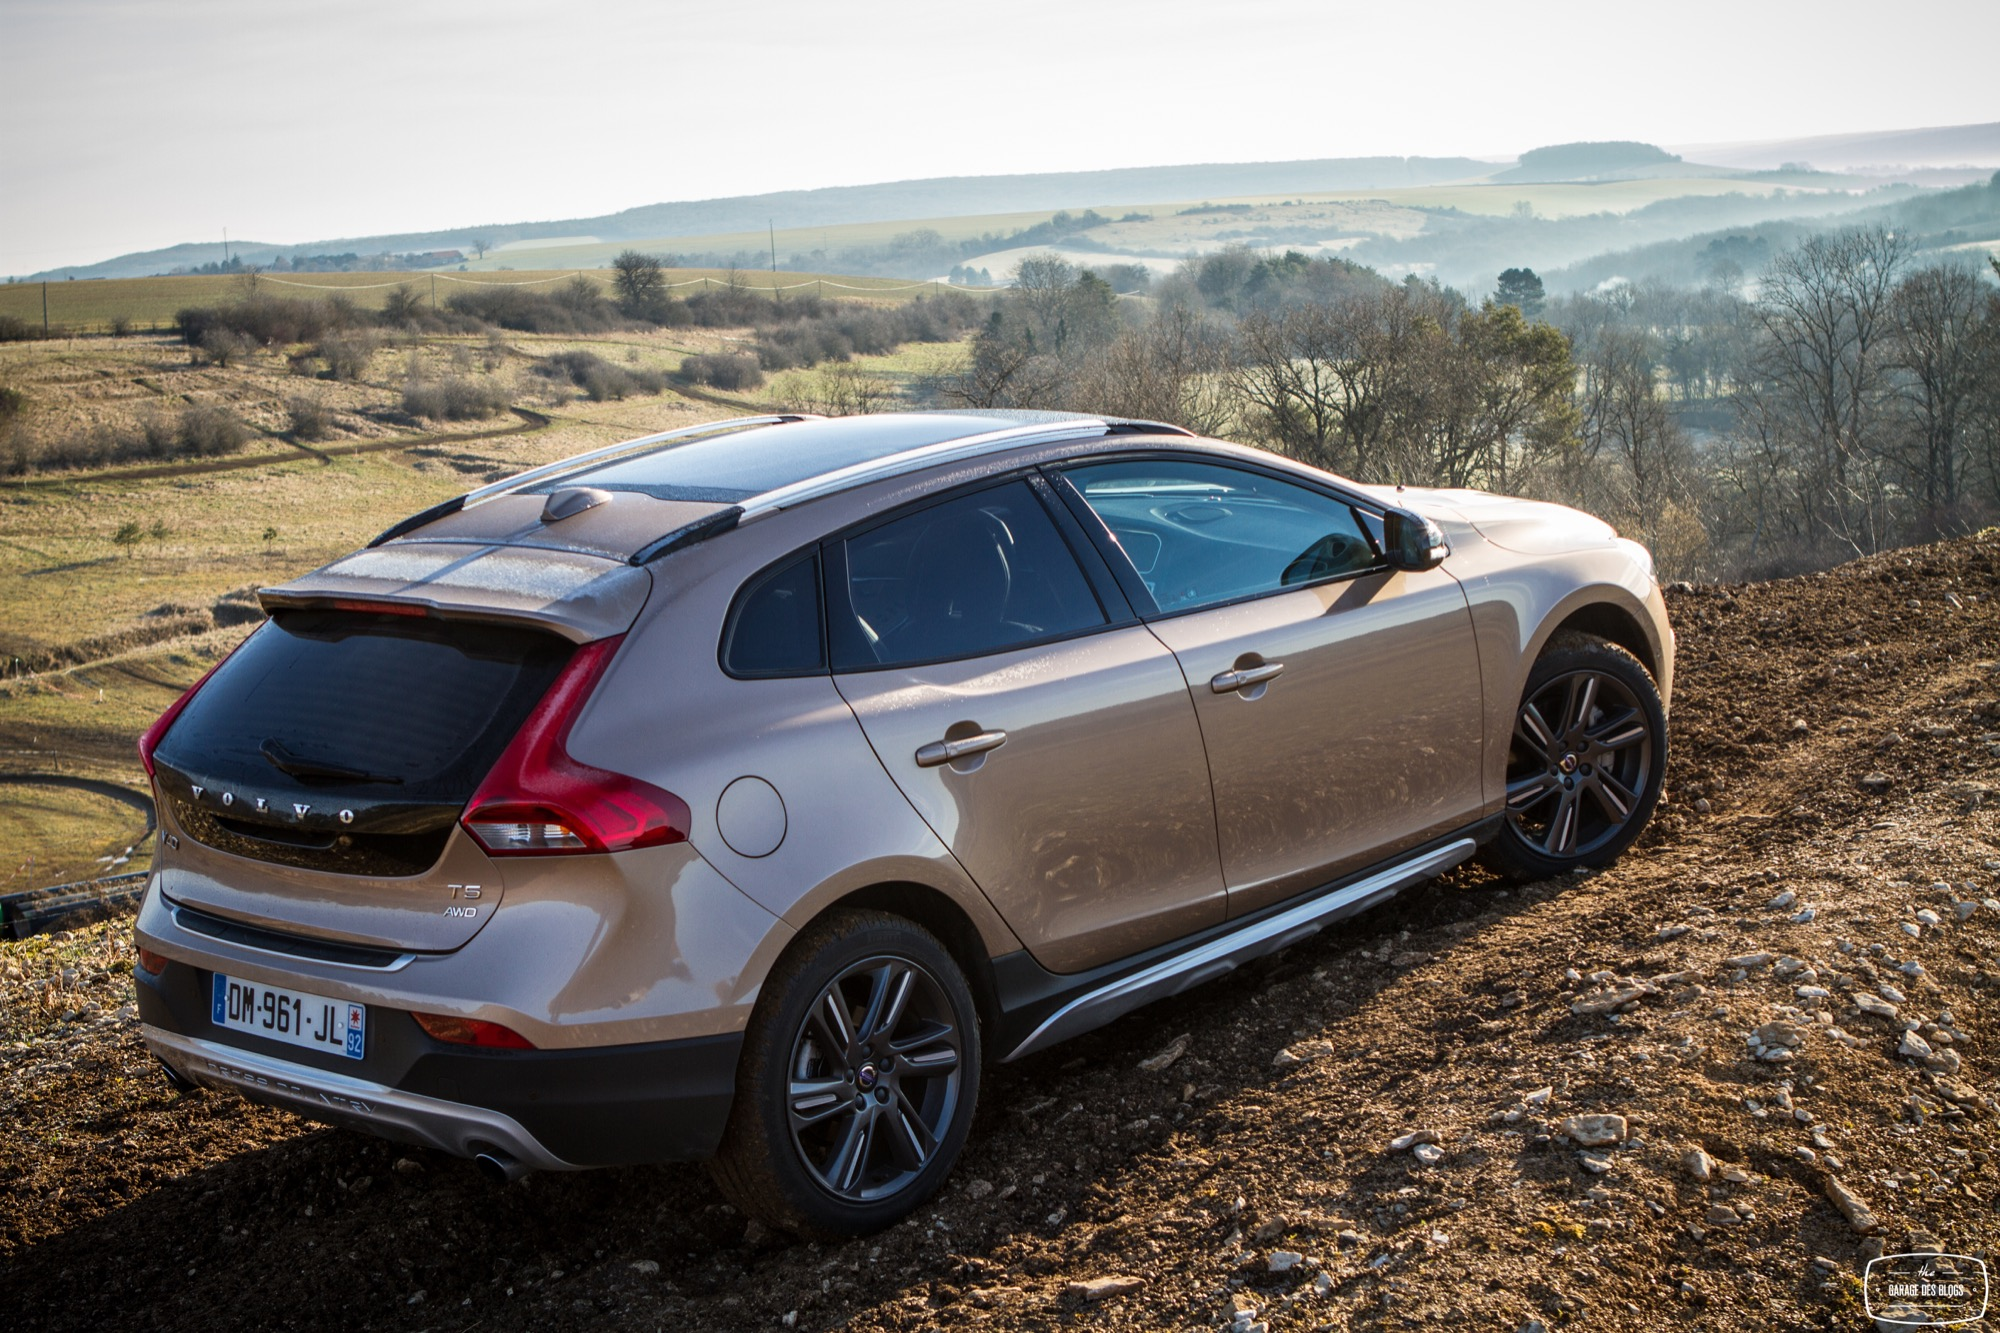 la version t5 awd de la volvo v40 cross country l 39 essai. Black Bedroom Furniture Sets. Home Design Ideas